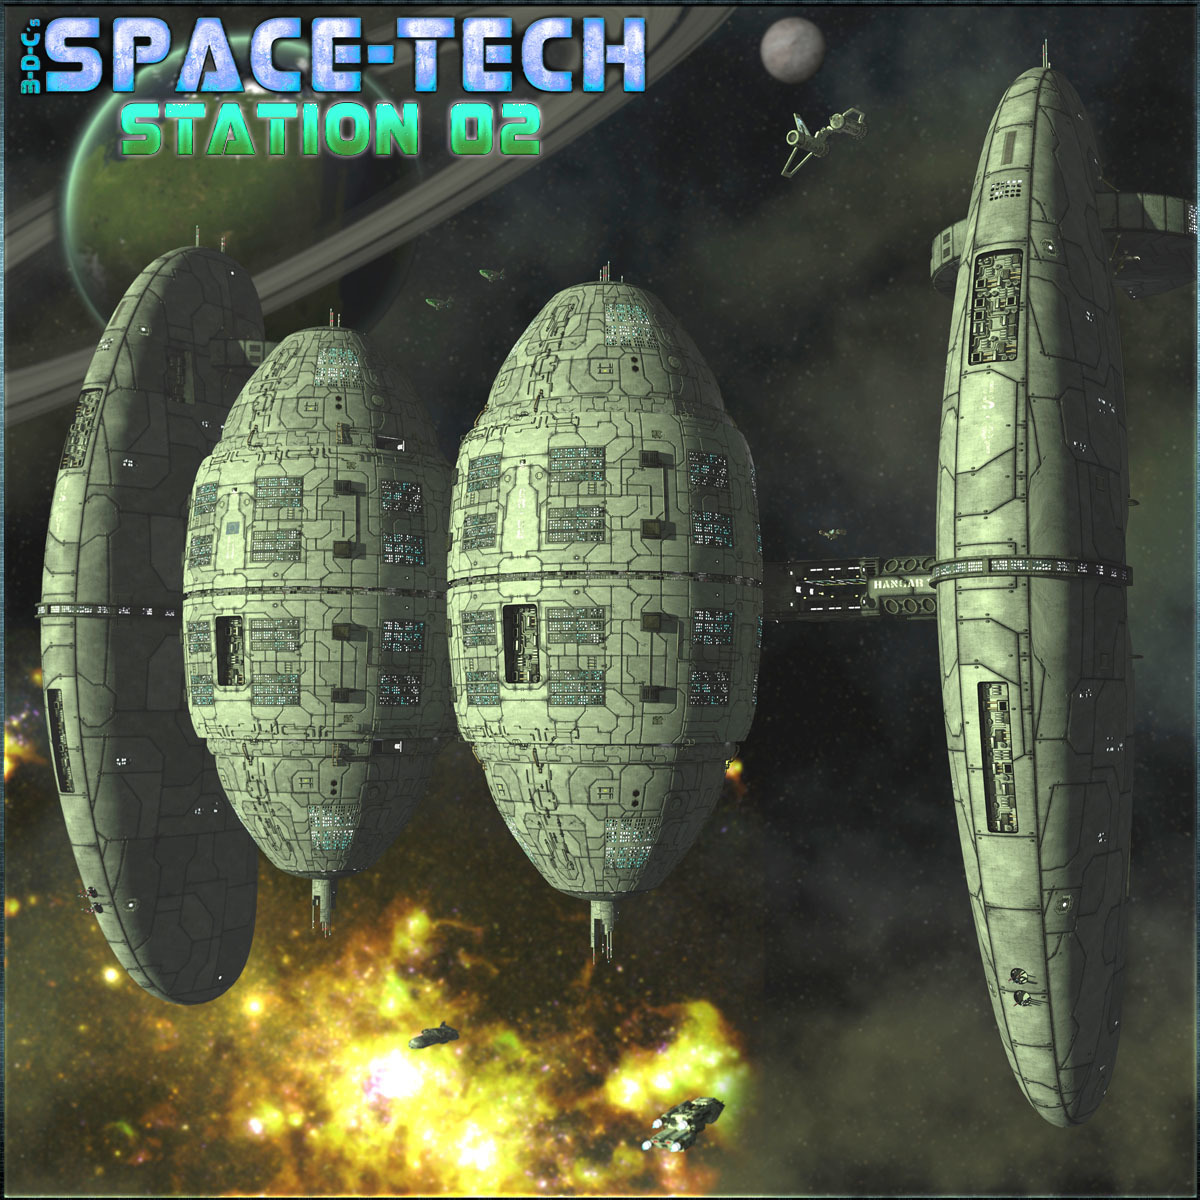 SpaceTech: Space Station 02